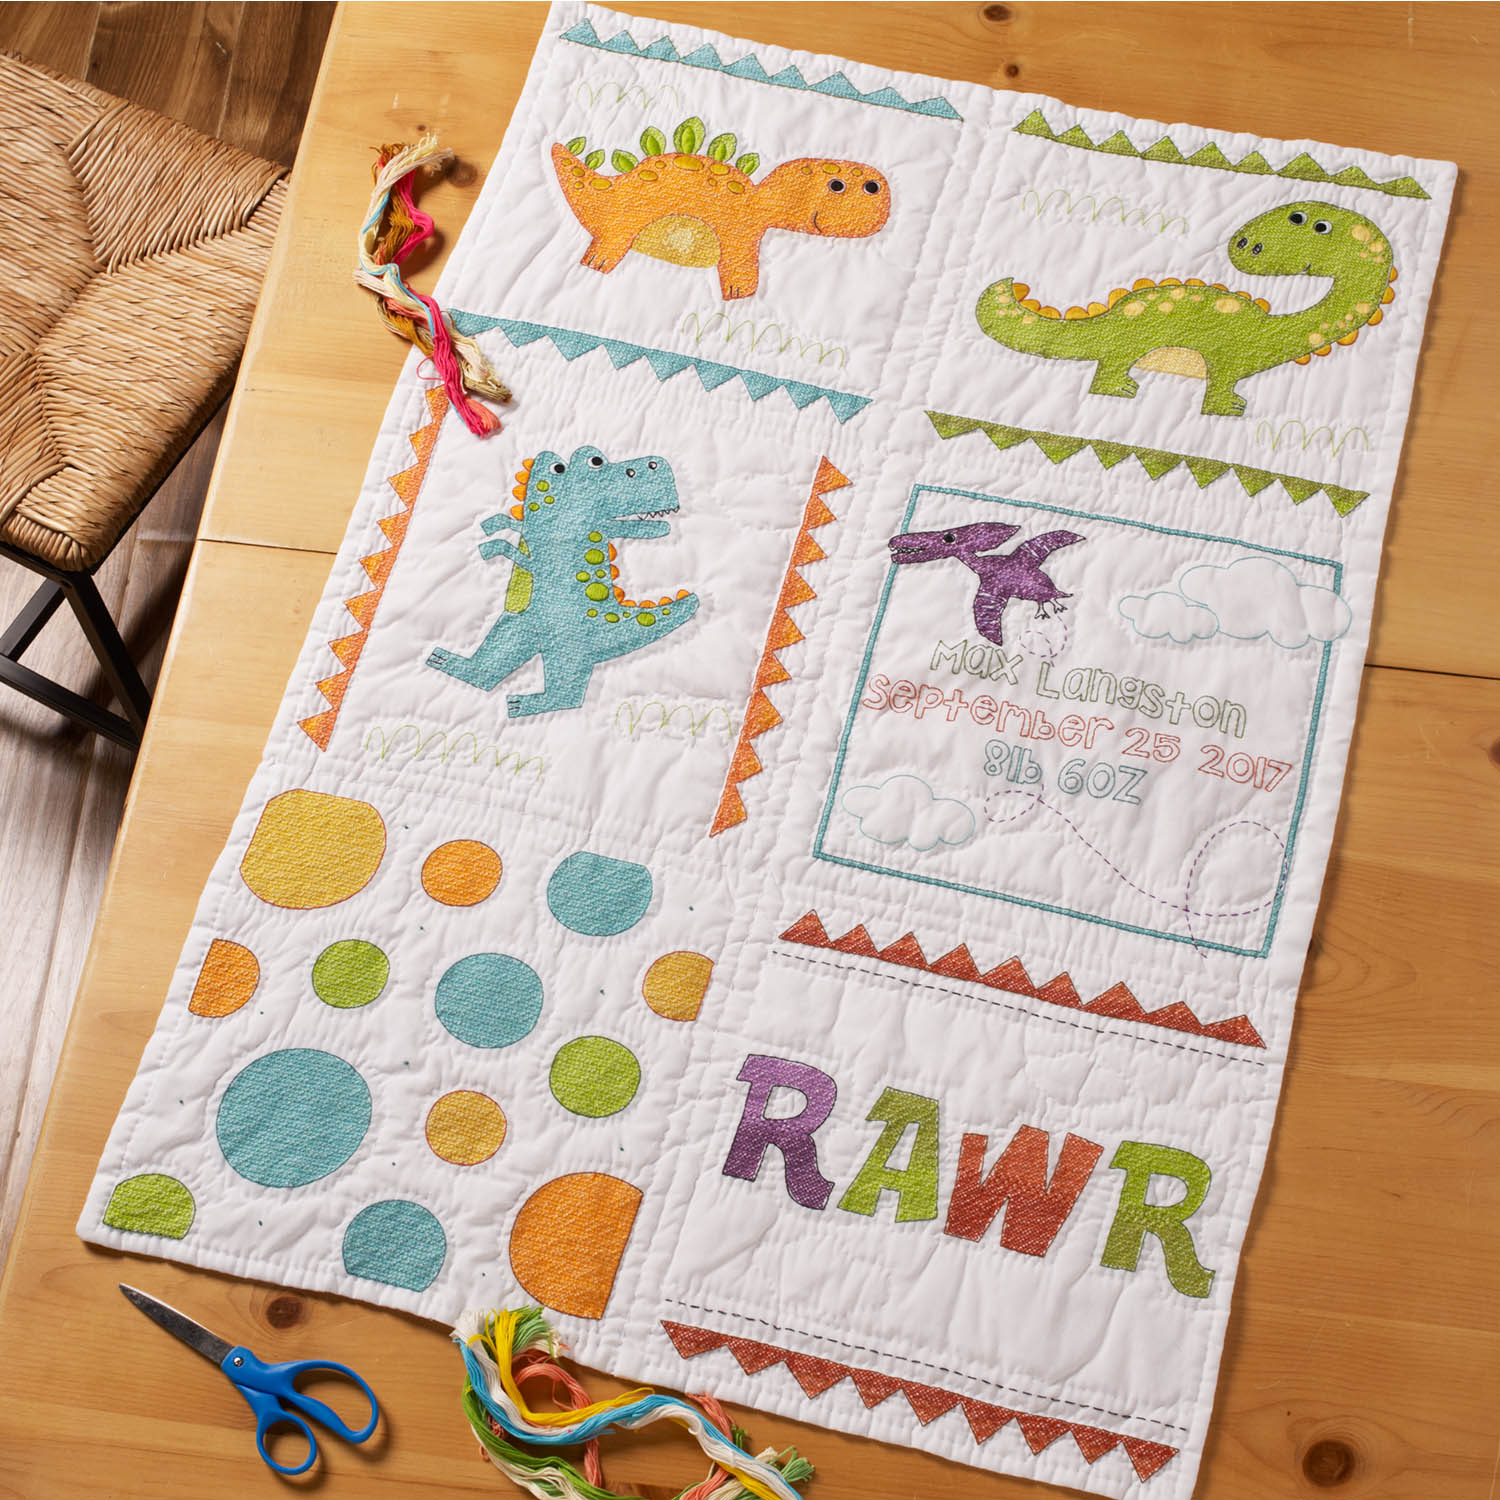 Bucilla ® Baby - Stamped Cross Stitch - Crib Ensembles - Dino Baby - Quilt Blocks - 47723